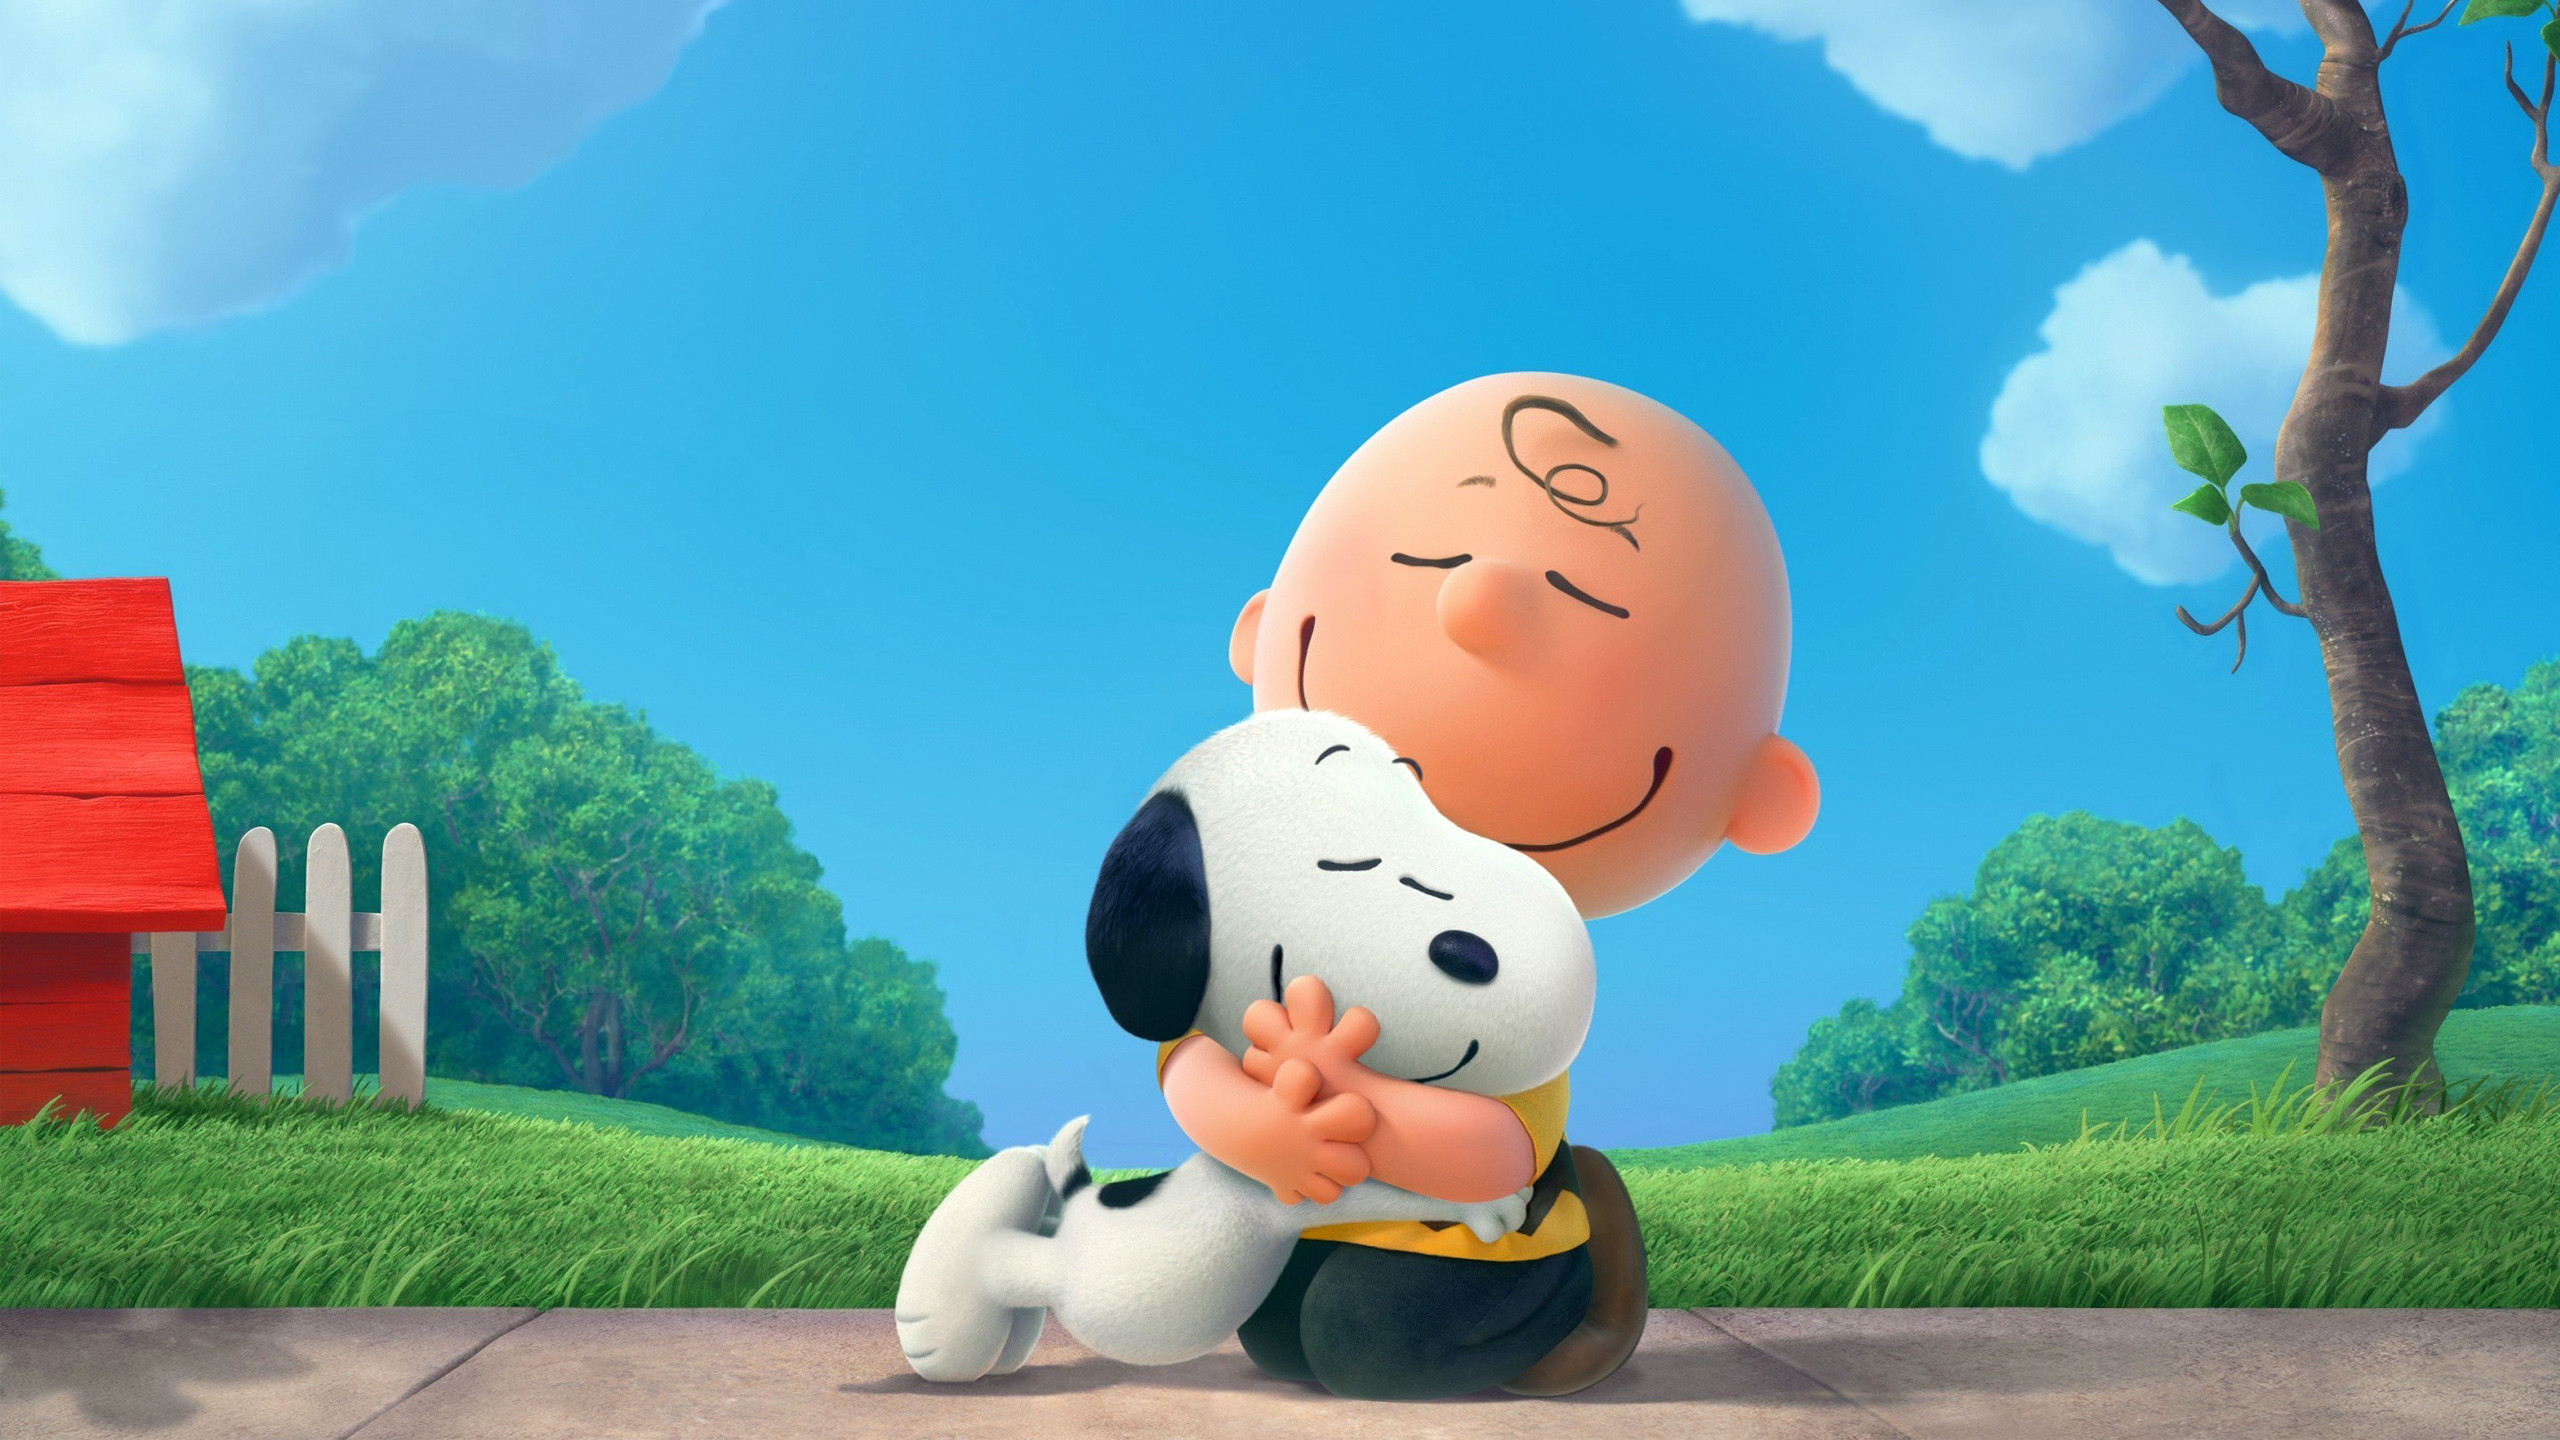 2560x1440 The Peanuts Charlie Brown Snoopy